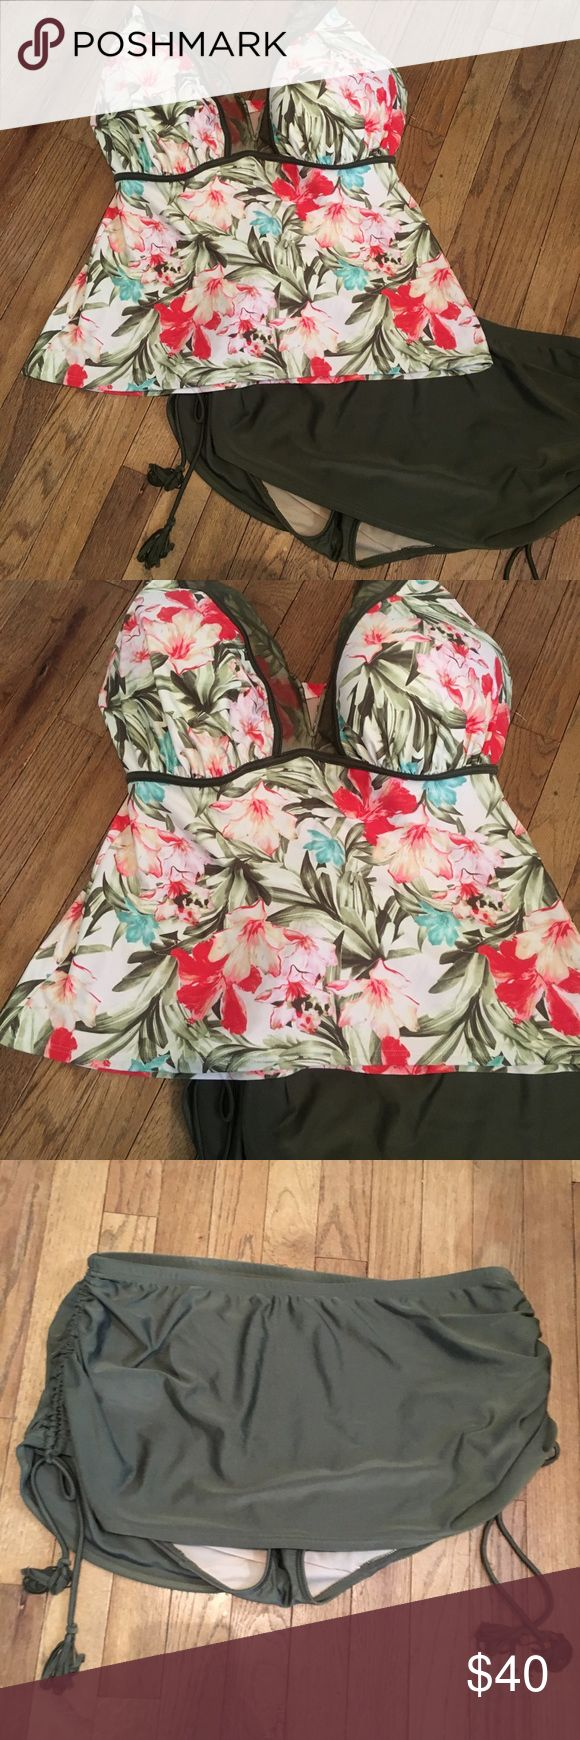 NWOT Lane Bryant swimsuit. 40G/18 Great swimsuit never worn .  Tropical print top with underwire cups.  Bottom has skirt overlay with touching strings on side .  Top is 40G bottoms are 18 Lane Bryant Swim